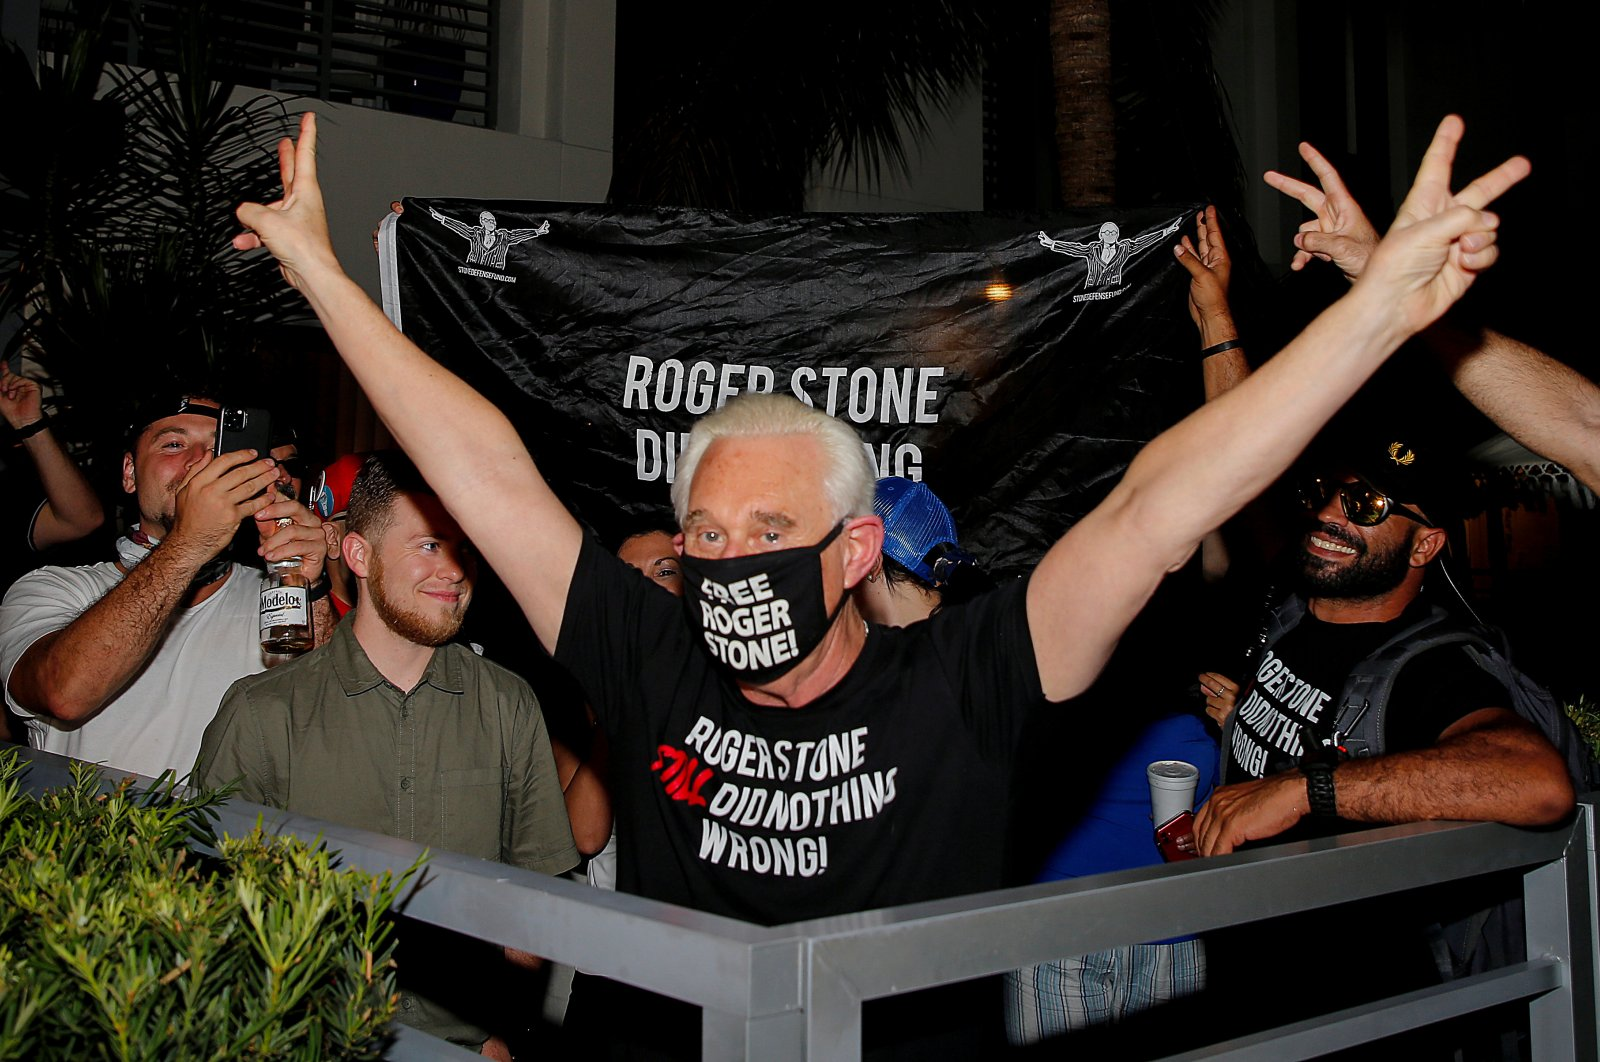 Roger Stone, a longtime friend and adviser of U.S. President Donald Trump, reacts after Trump commuted his federal prison sentence, outside his home in Fort Lauderdale, Fla., July 10, 2020.  (Reuters Photo)